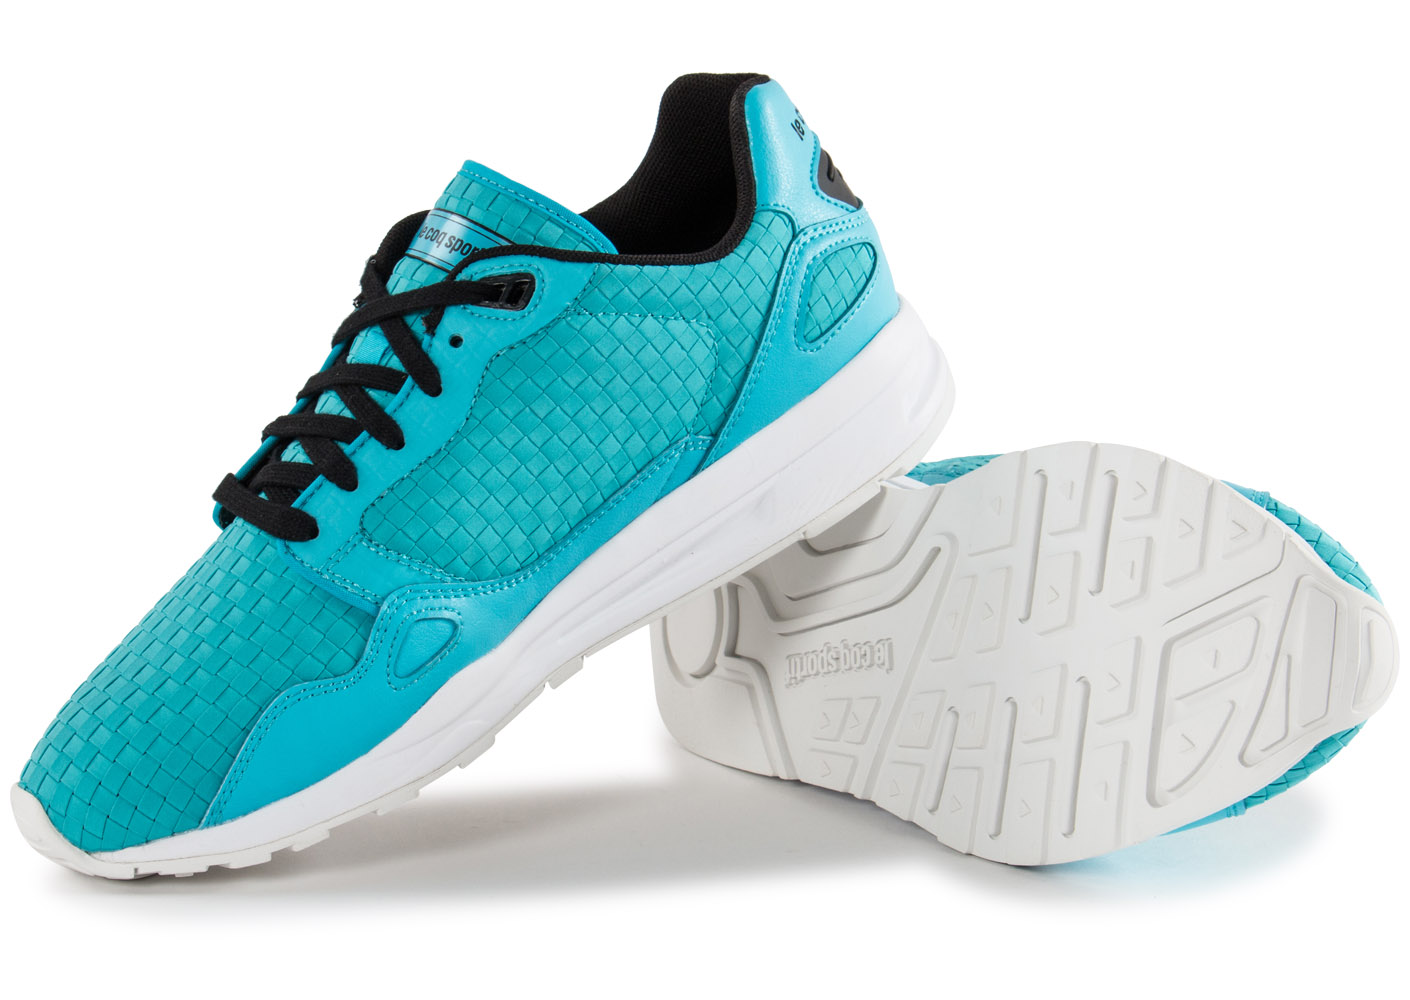 le coq sportif lcs r900 woven turquoise baskets running homme. Black Bedroom Furniture Sets. Home Design Ideas